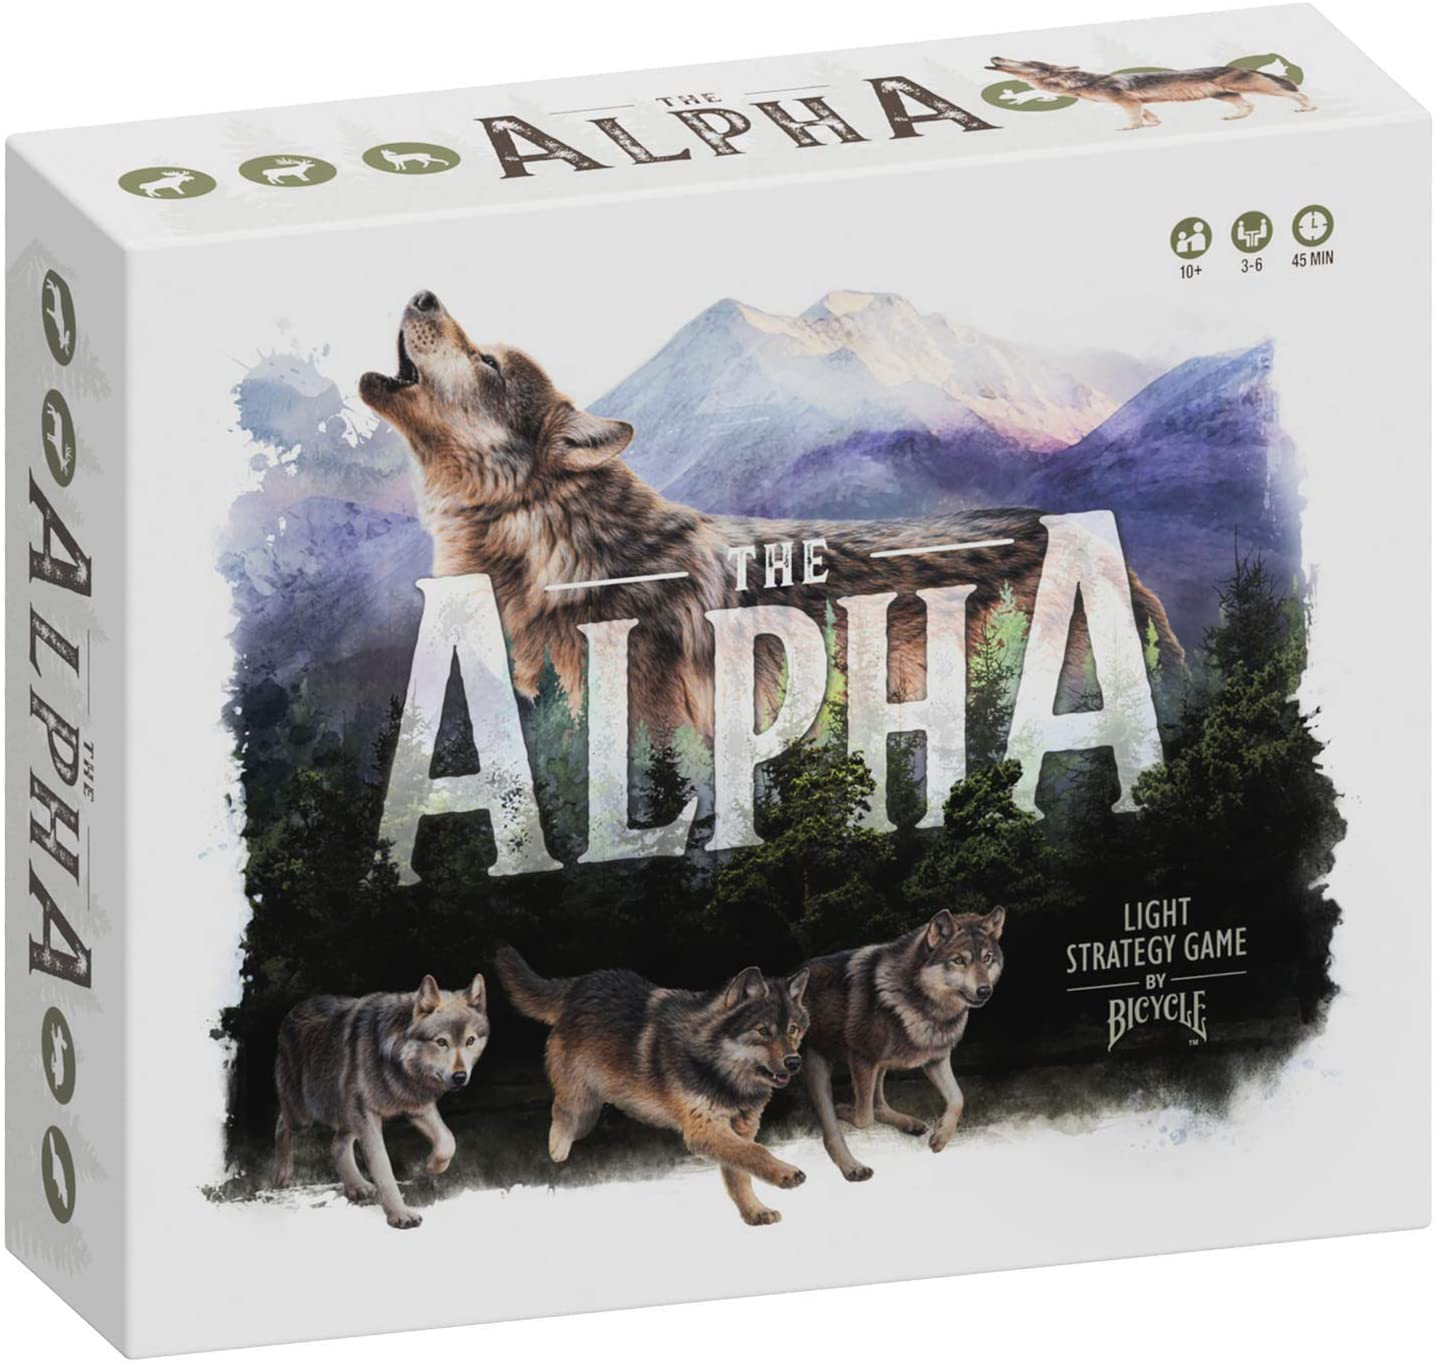 The Alpha's box features art of a wolf and the forest habitat in which the game takes place.